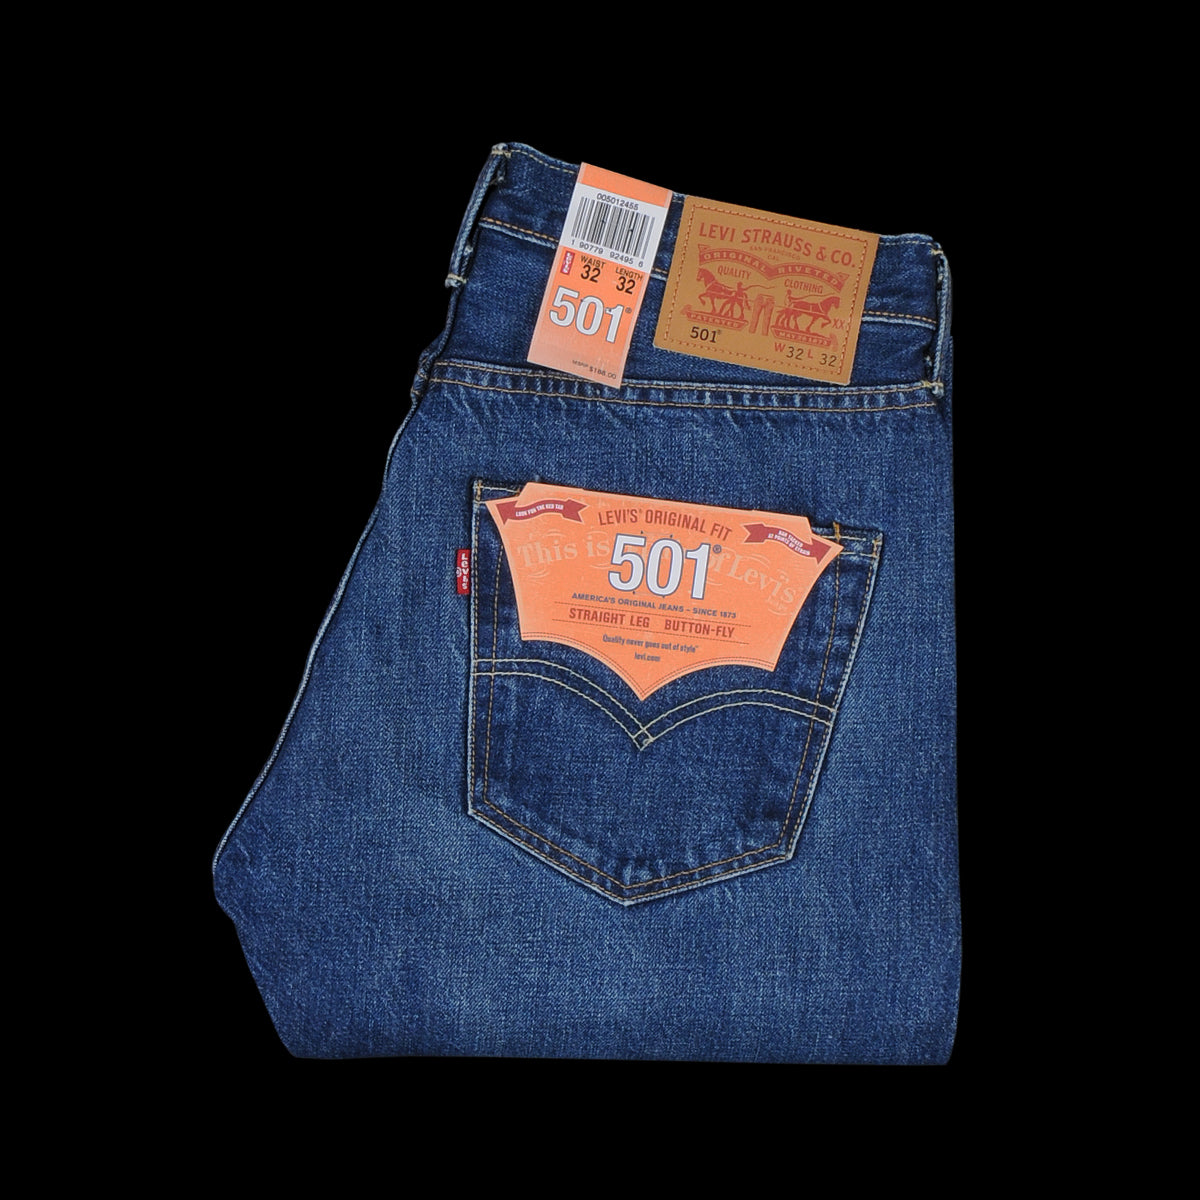 a0ae4b0d29c Levi's Made In The Usa - Selvedge 501 Original Fit Jean in Selvedge Rinse